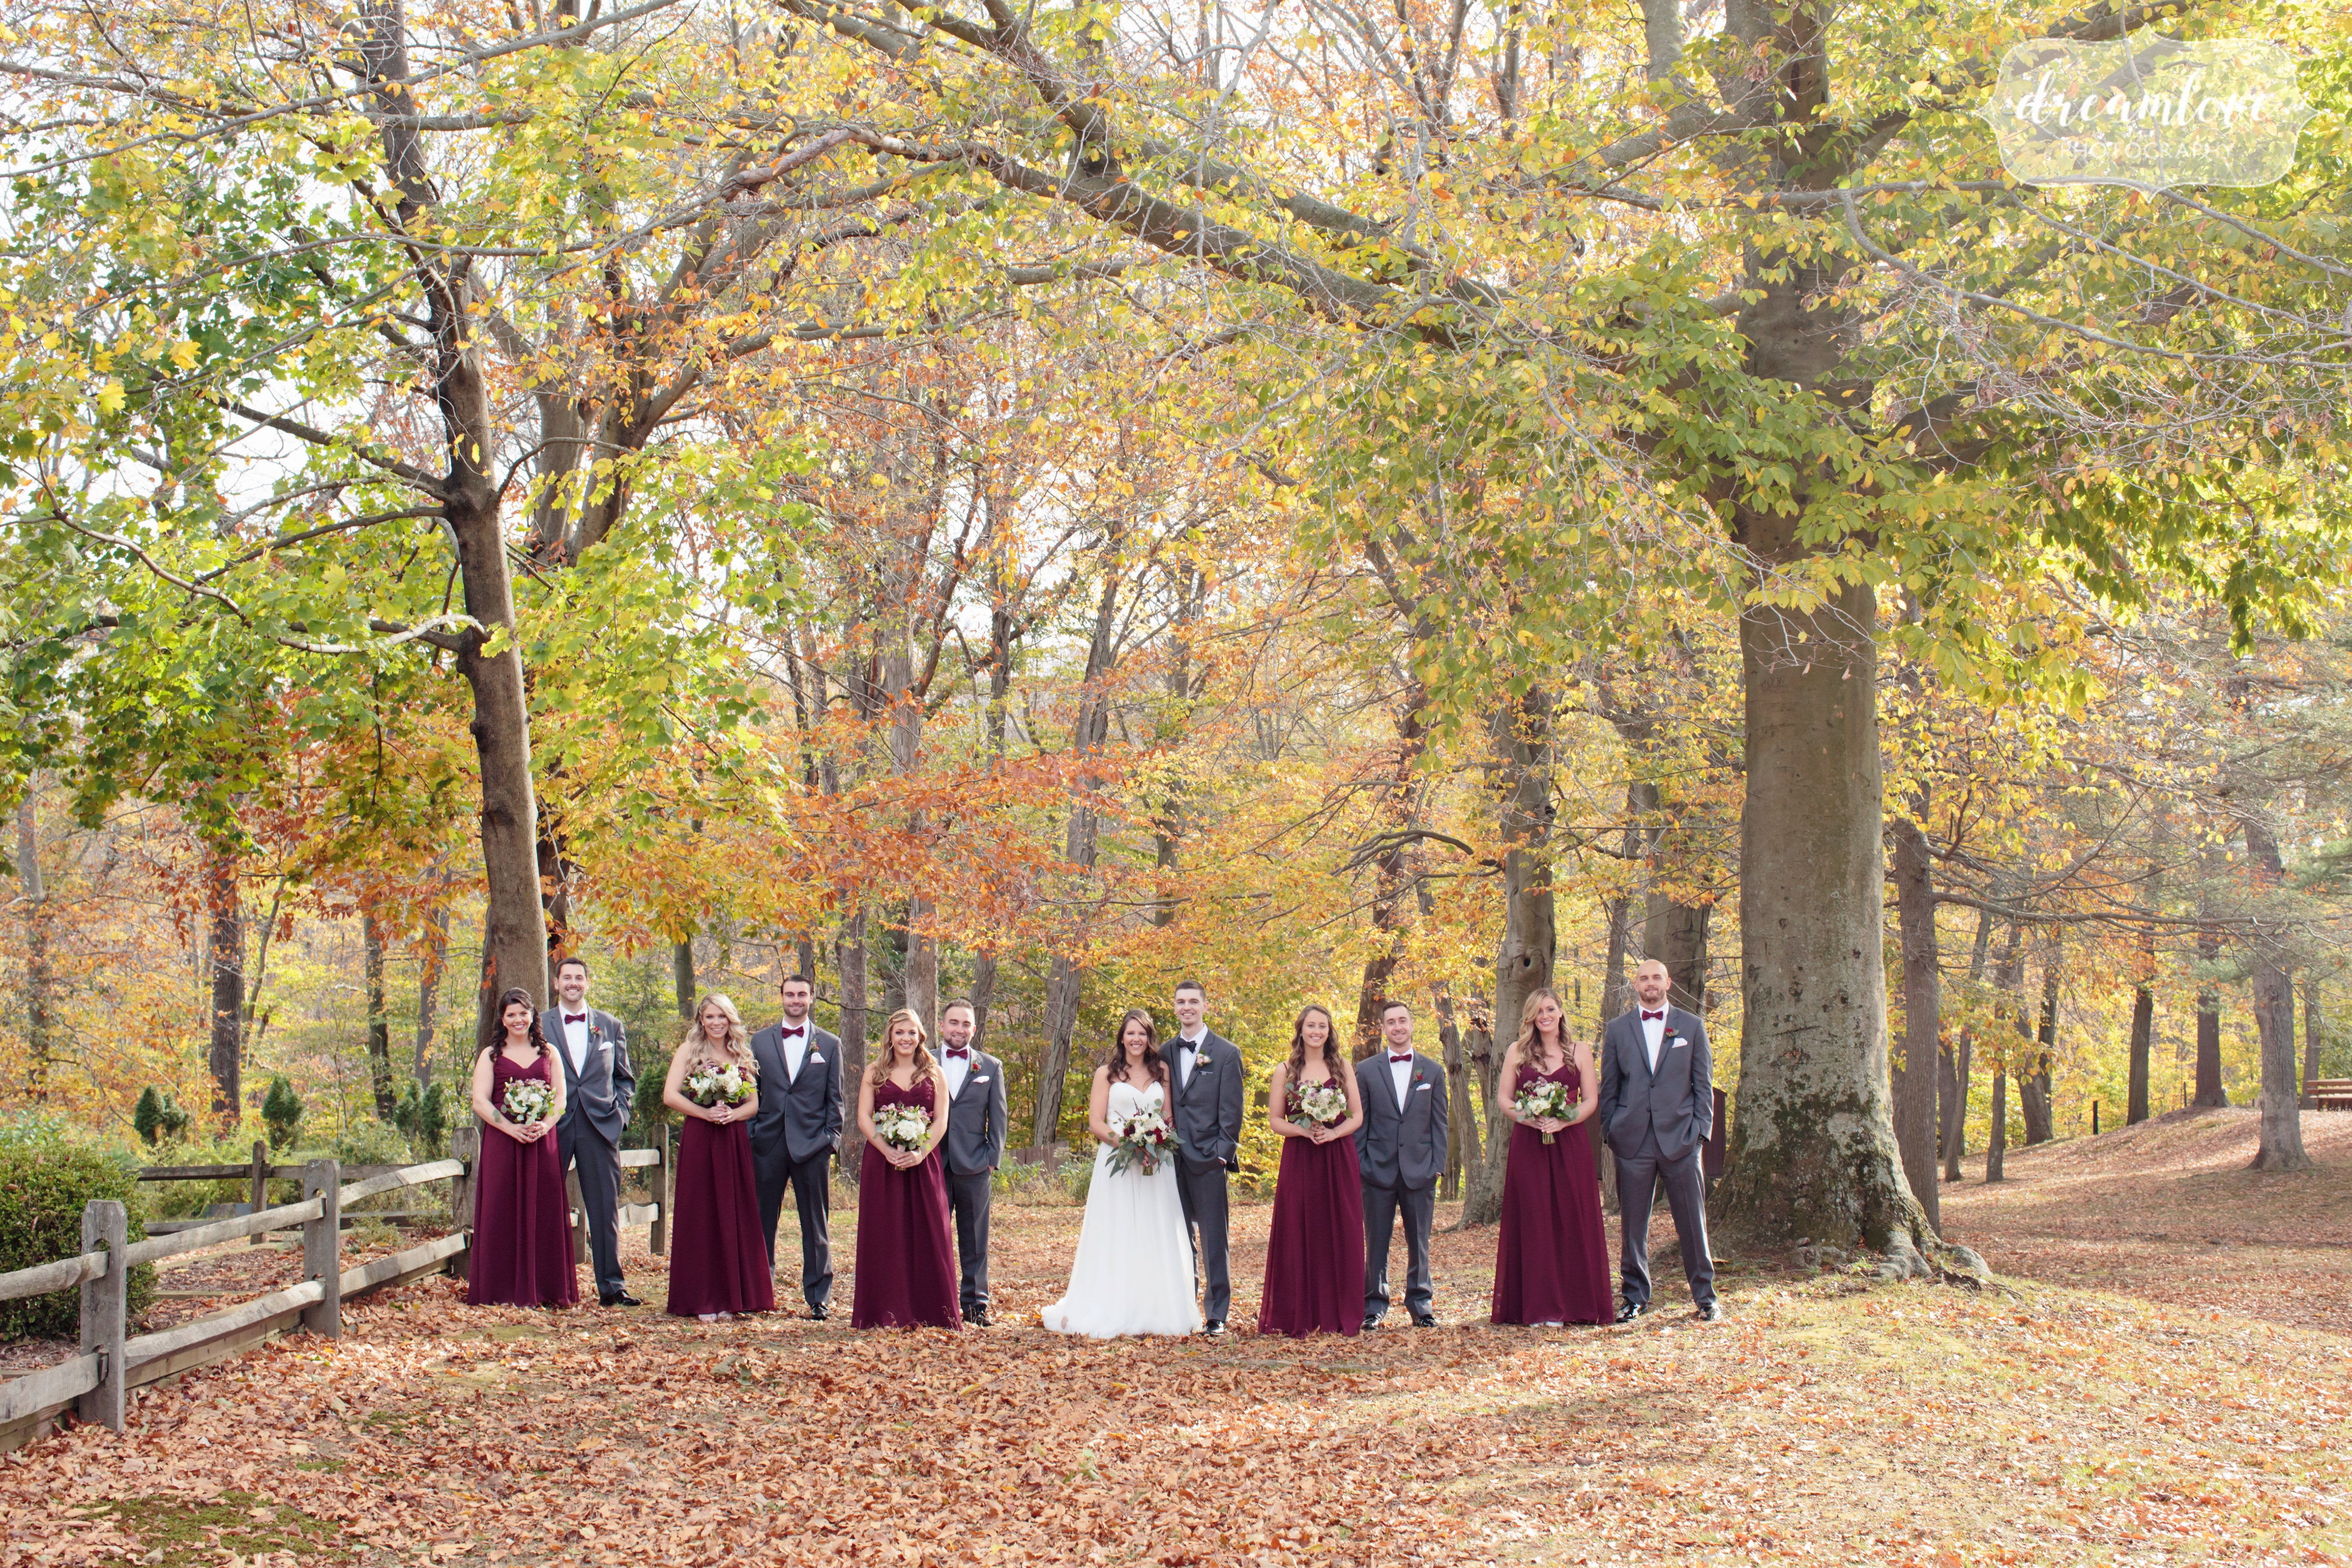 Ethereal wedding photography of the wedding party far away in the woods under a canopy of yellow trees.